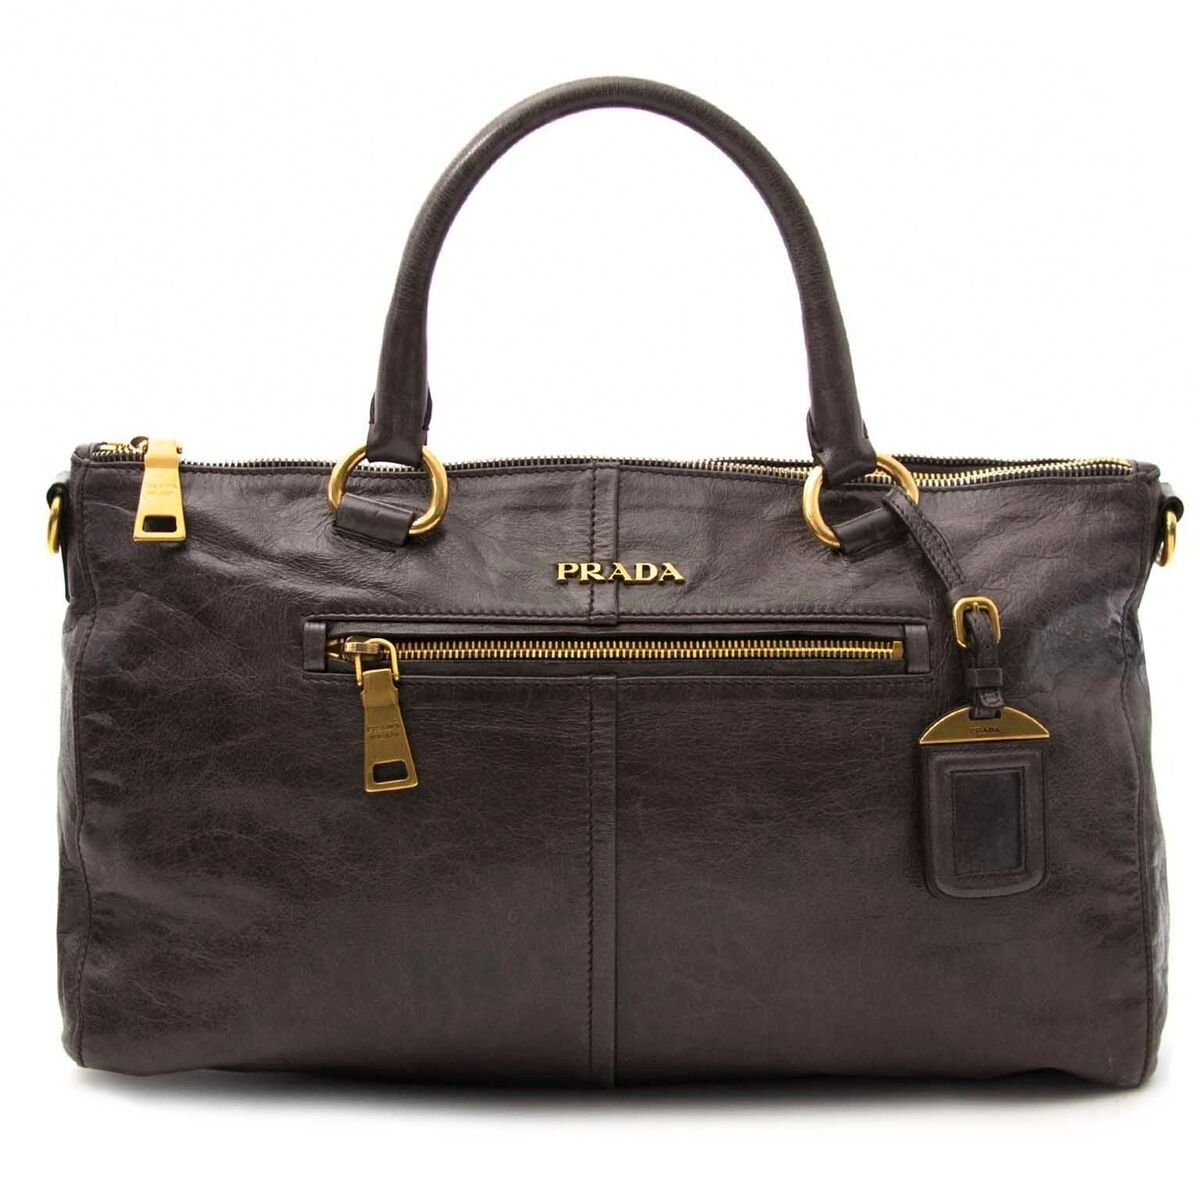 c42cde406e26 Buy an authentic secondhand Prada bags at the right price at LabelLOV  vintage webshop. Safe